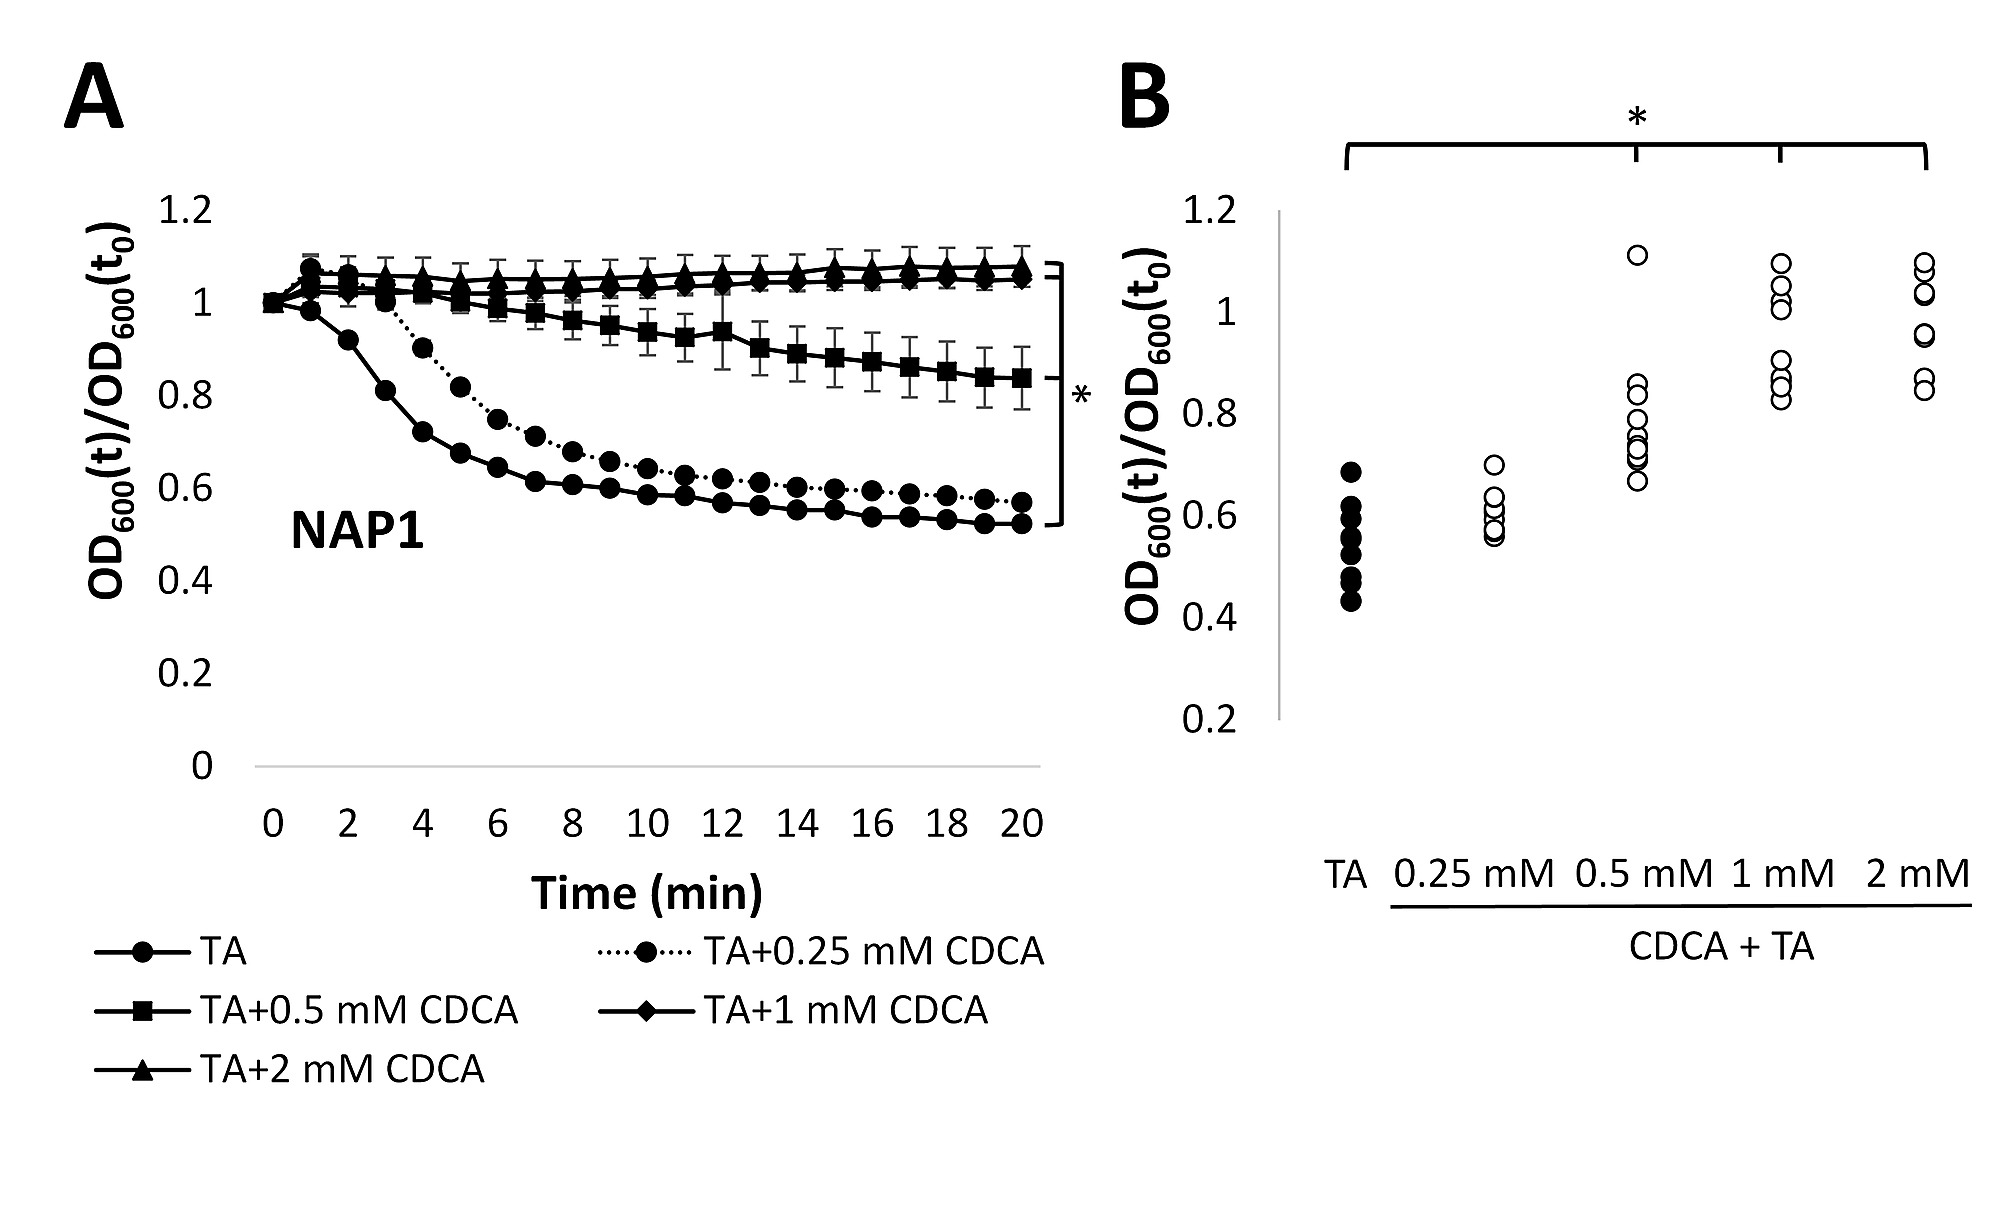 Changes in Colonic Bile Acid position following Fecal Microbiota